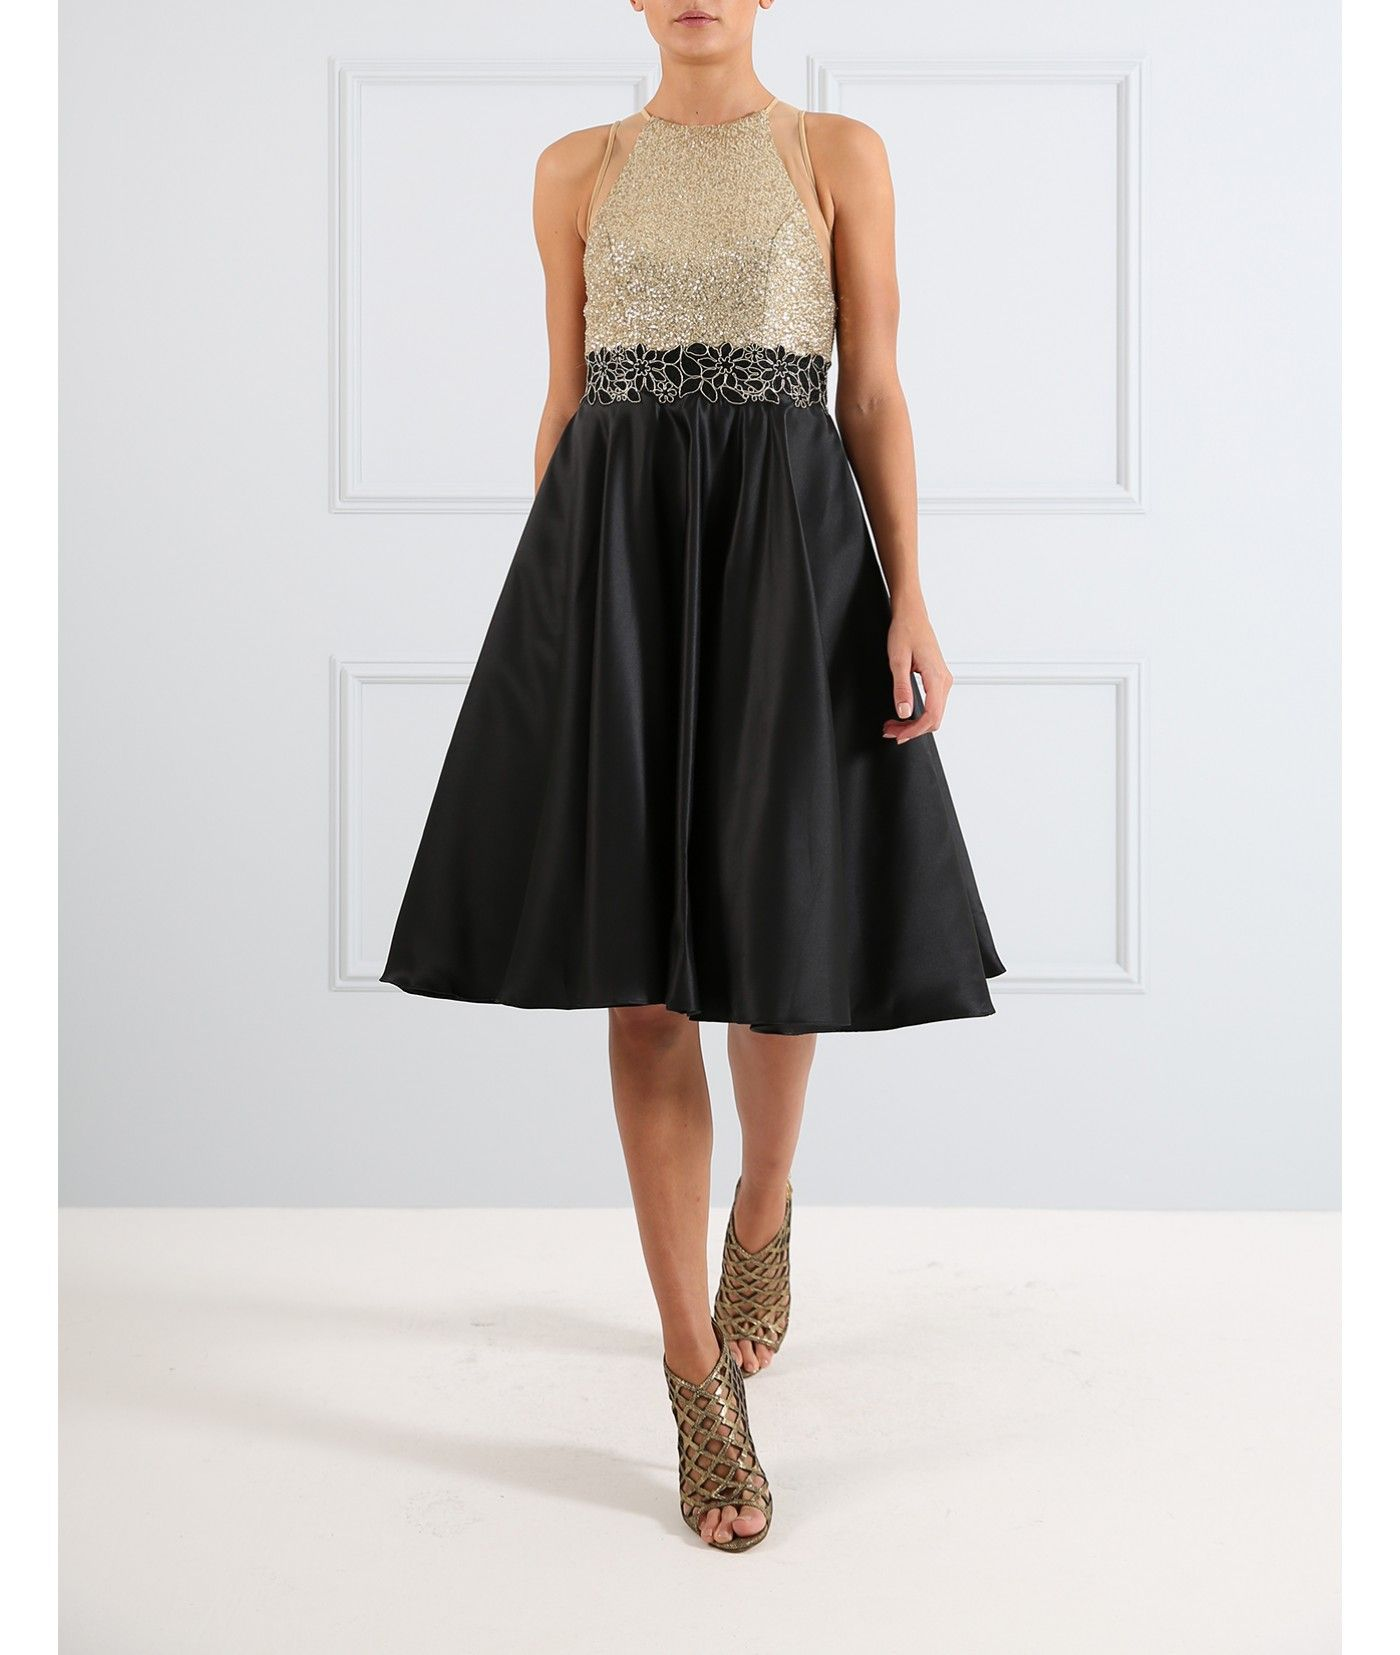 Whether you're heading to prom or a black-tie event, our black and gold full-skirt dress is a must-have. Featuring a black satin skirt and sparkling gold sequin bodice with floral applique detailing, be the belle of the ball this season.